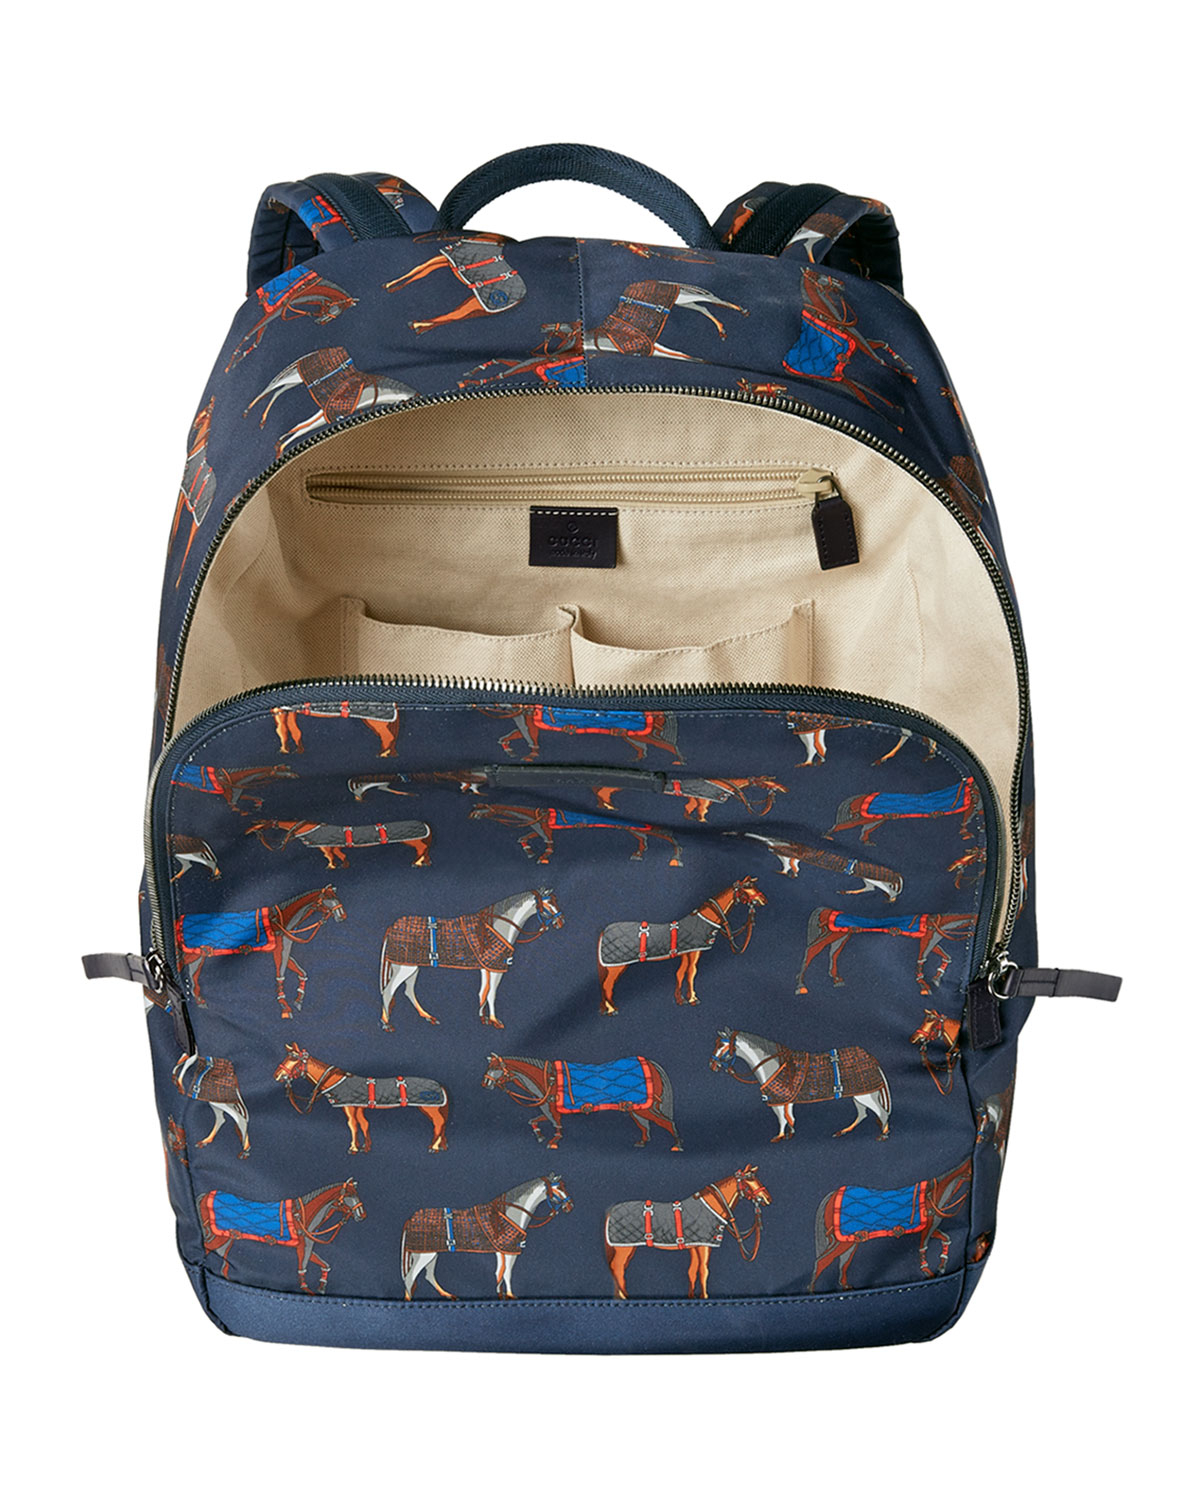 Gucci Horse-print Backpack in Blue for Men - Lyst 8b293c2db0